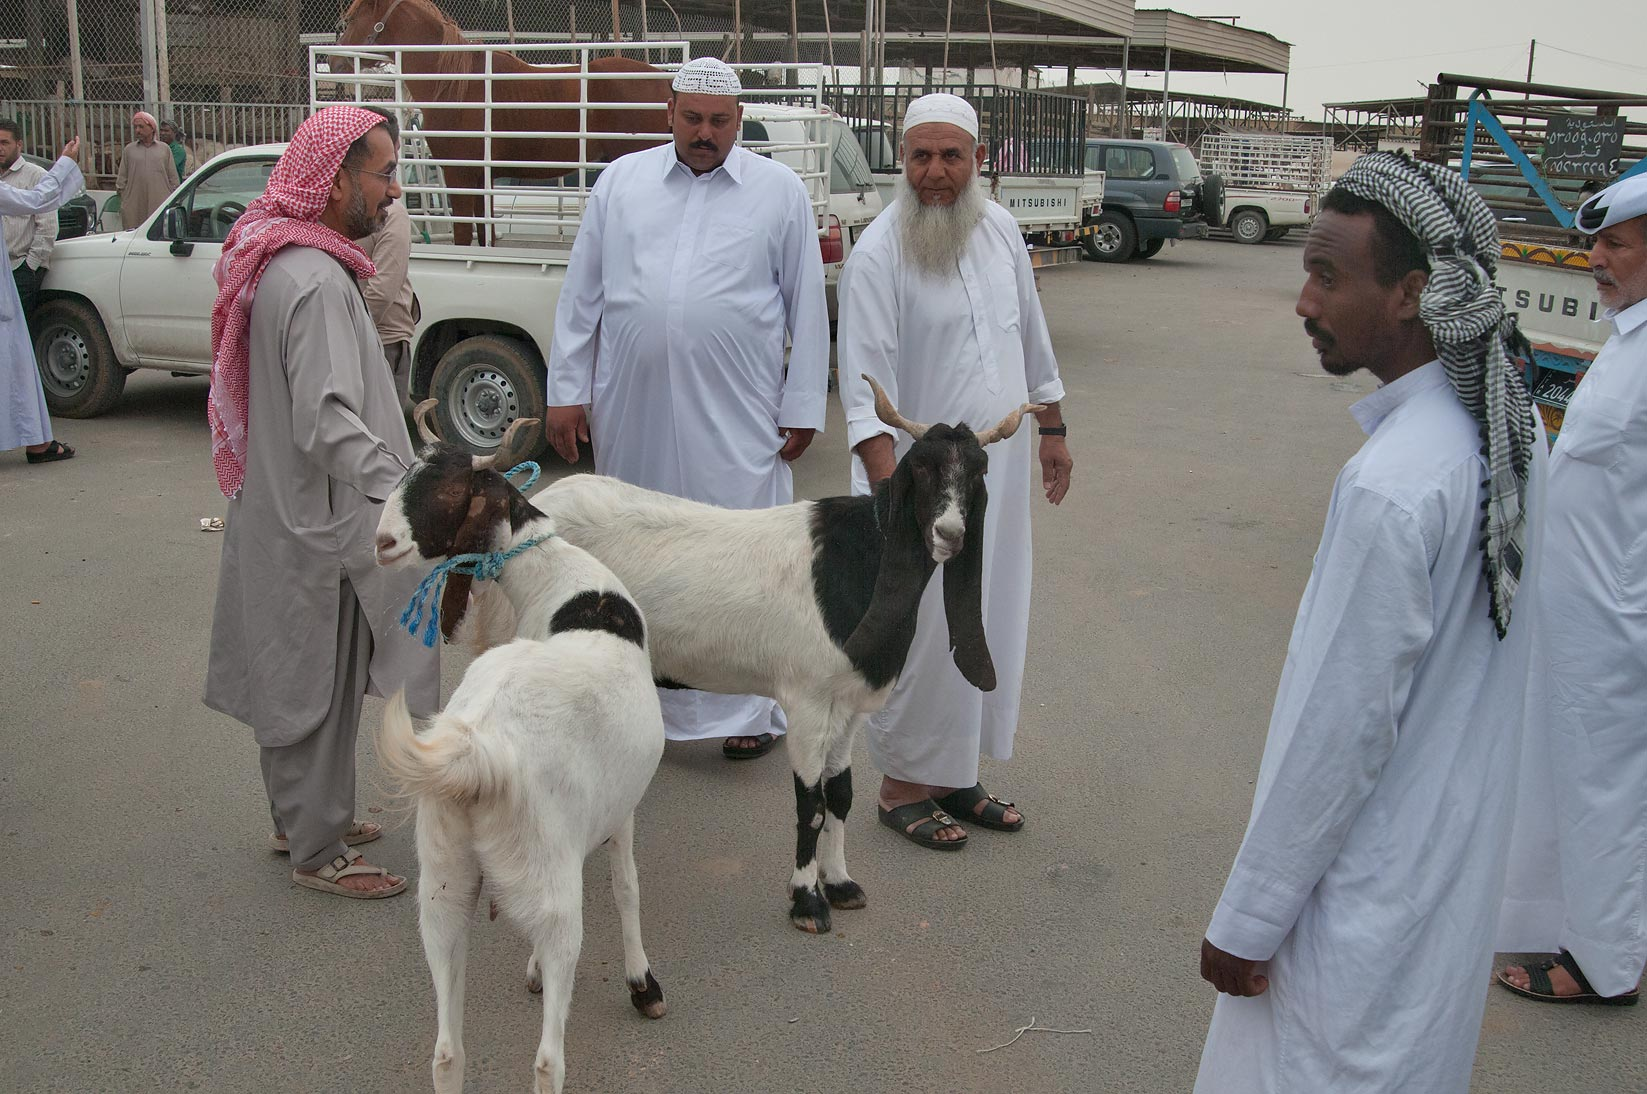 People with goats in Sheep Market, Wholesale Markets area. Doha, Qatar